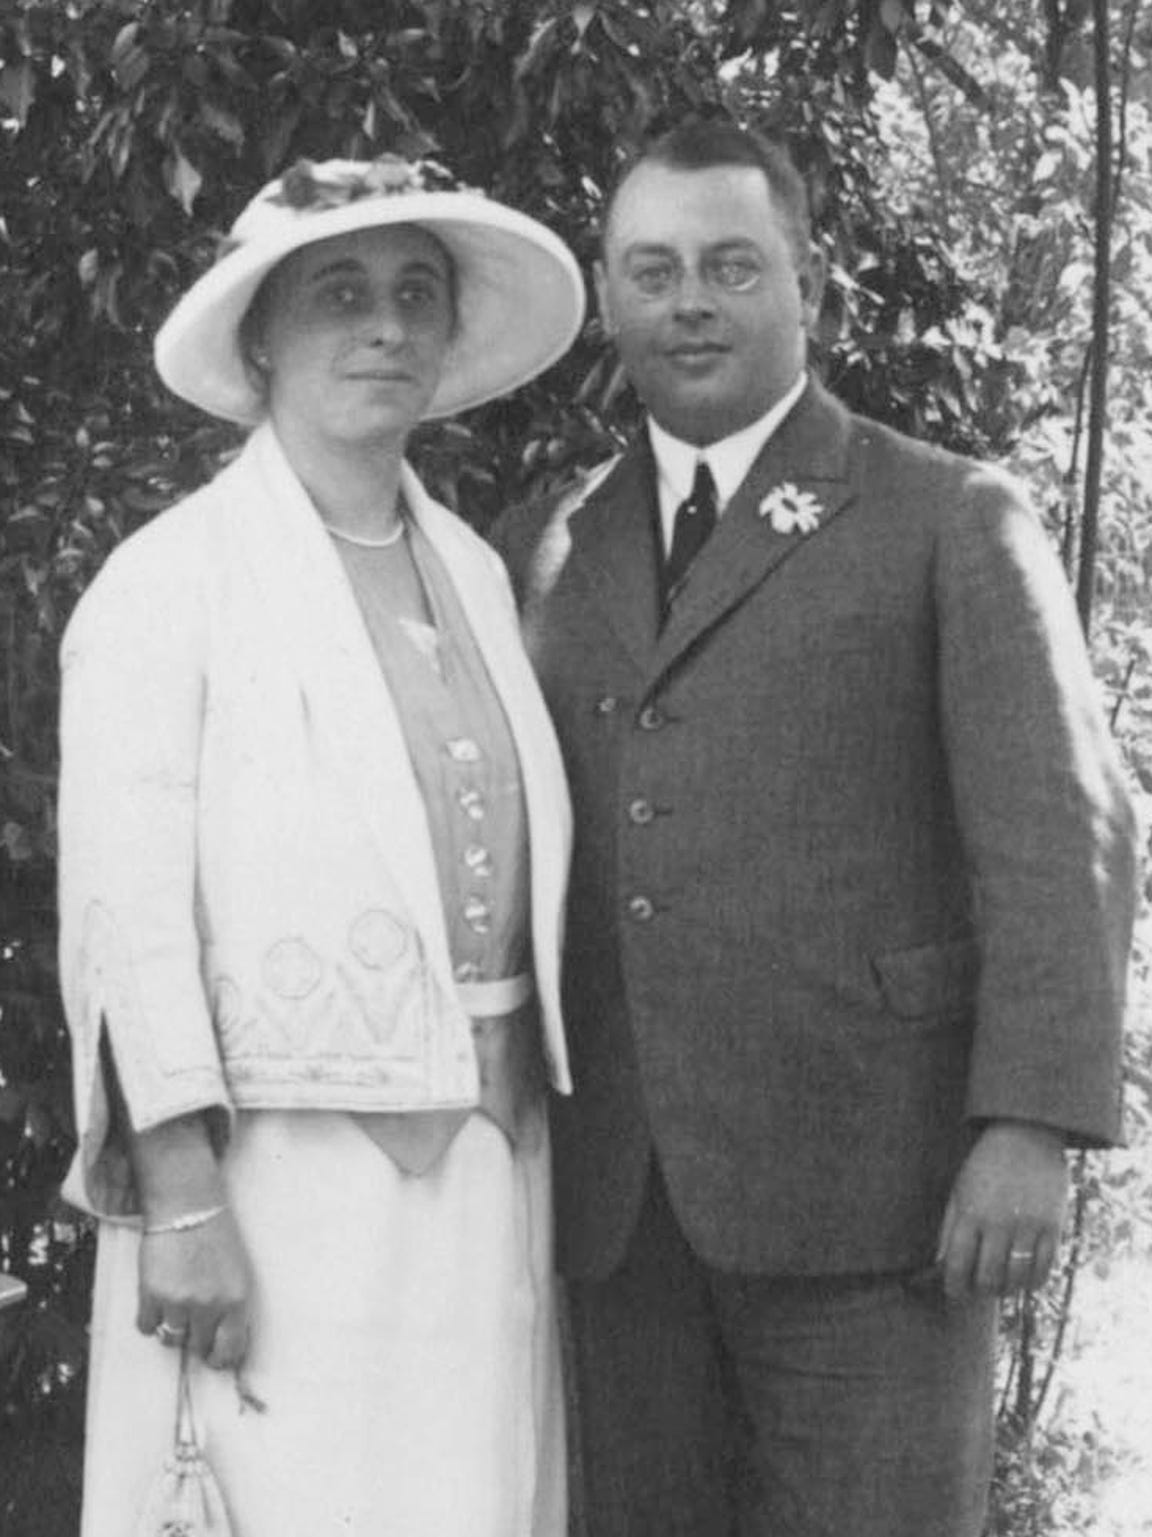 After marrying in 1919, Emmy and Fritz Grunewald settled